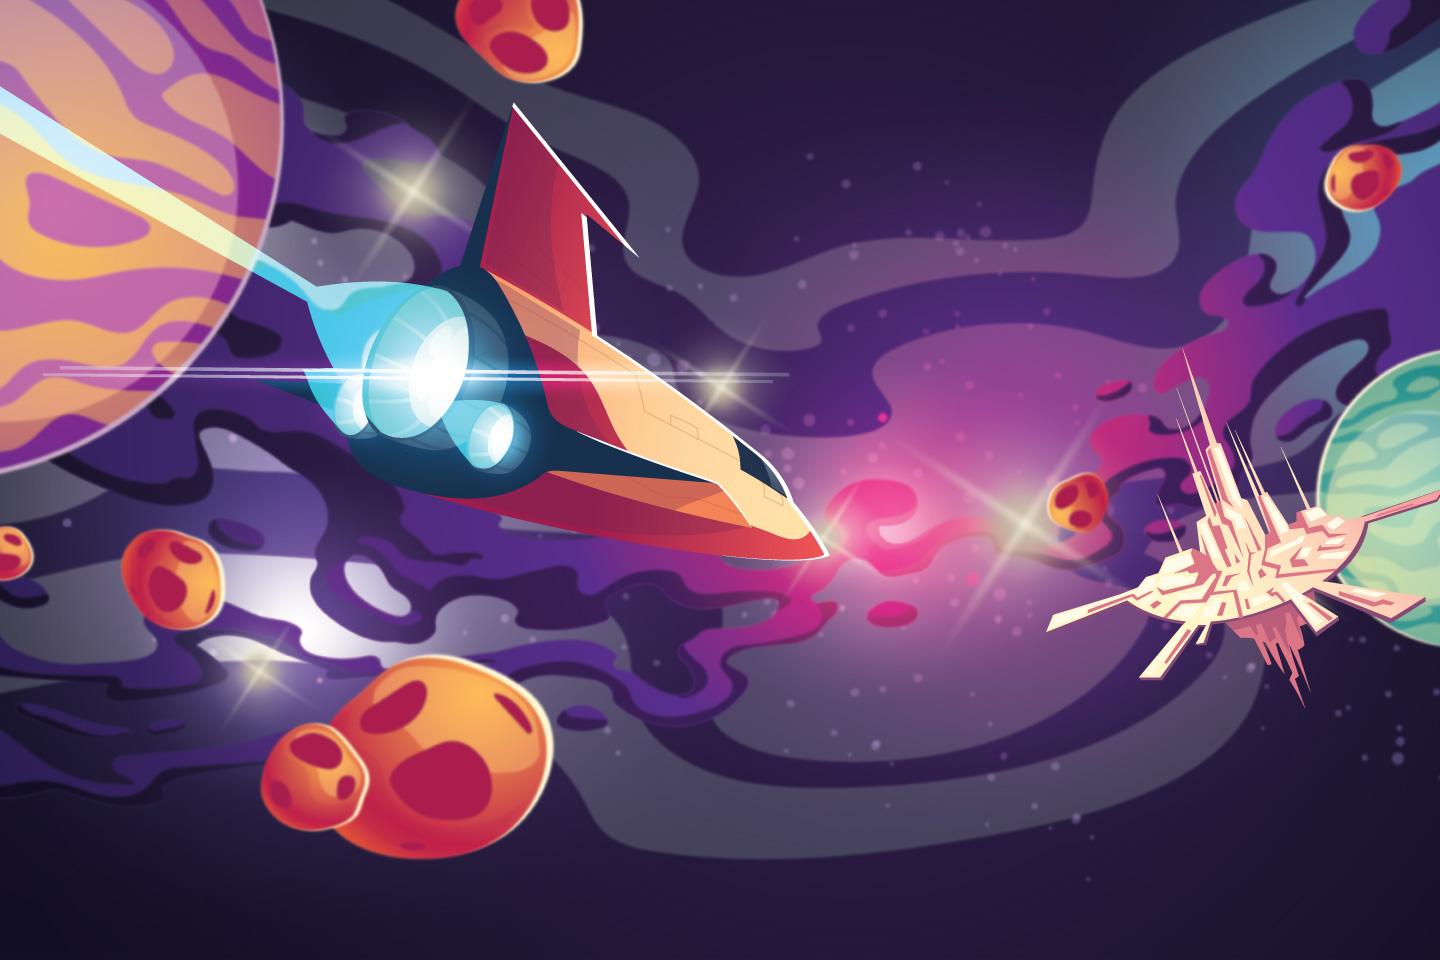 Illustration of a space ship flying toward a space station with a colorful galactic background